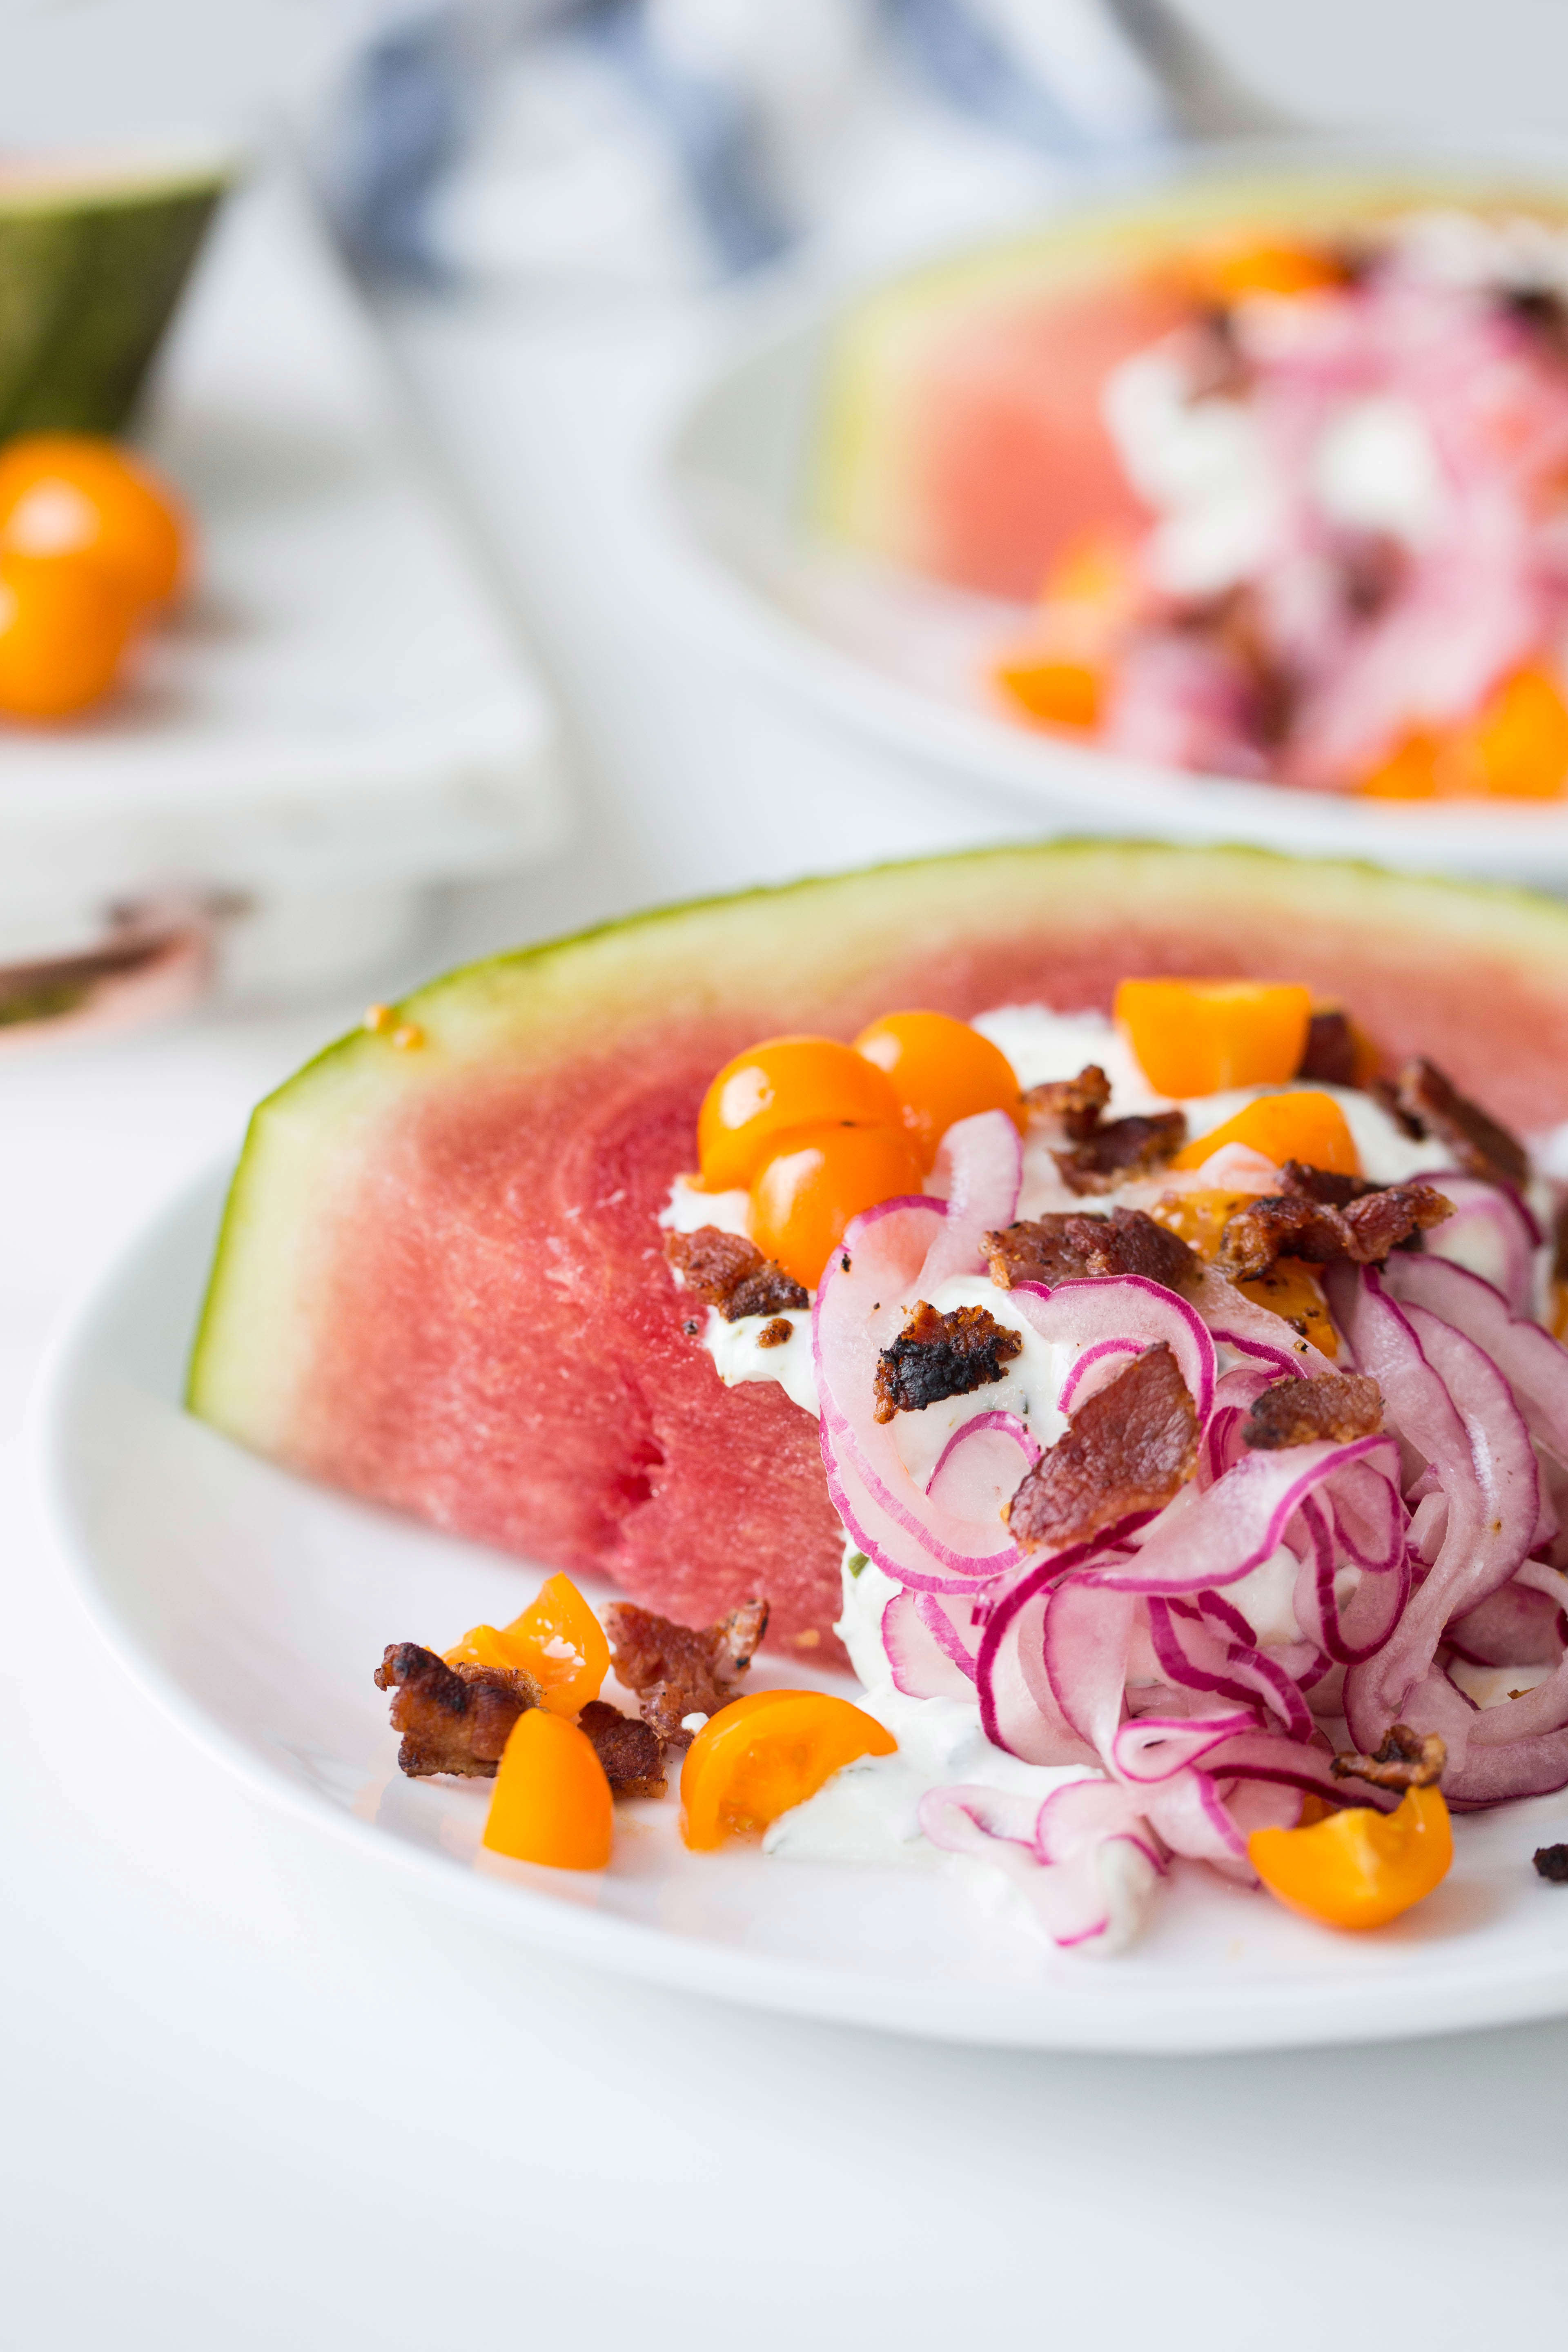 Watermelon Wedge Salads with Greek Yogurt Ranch and Quick-Pickled Onions